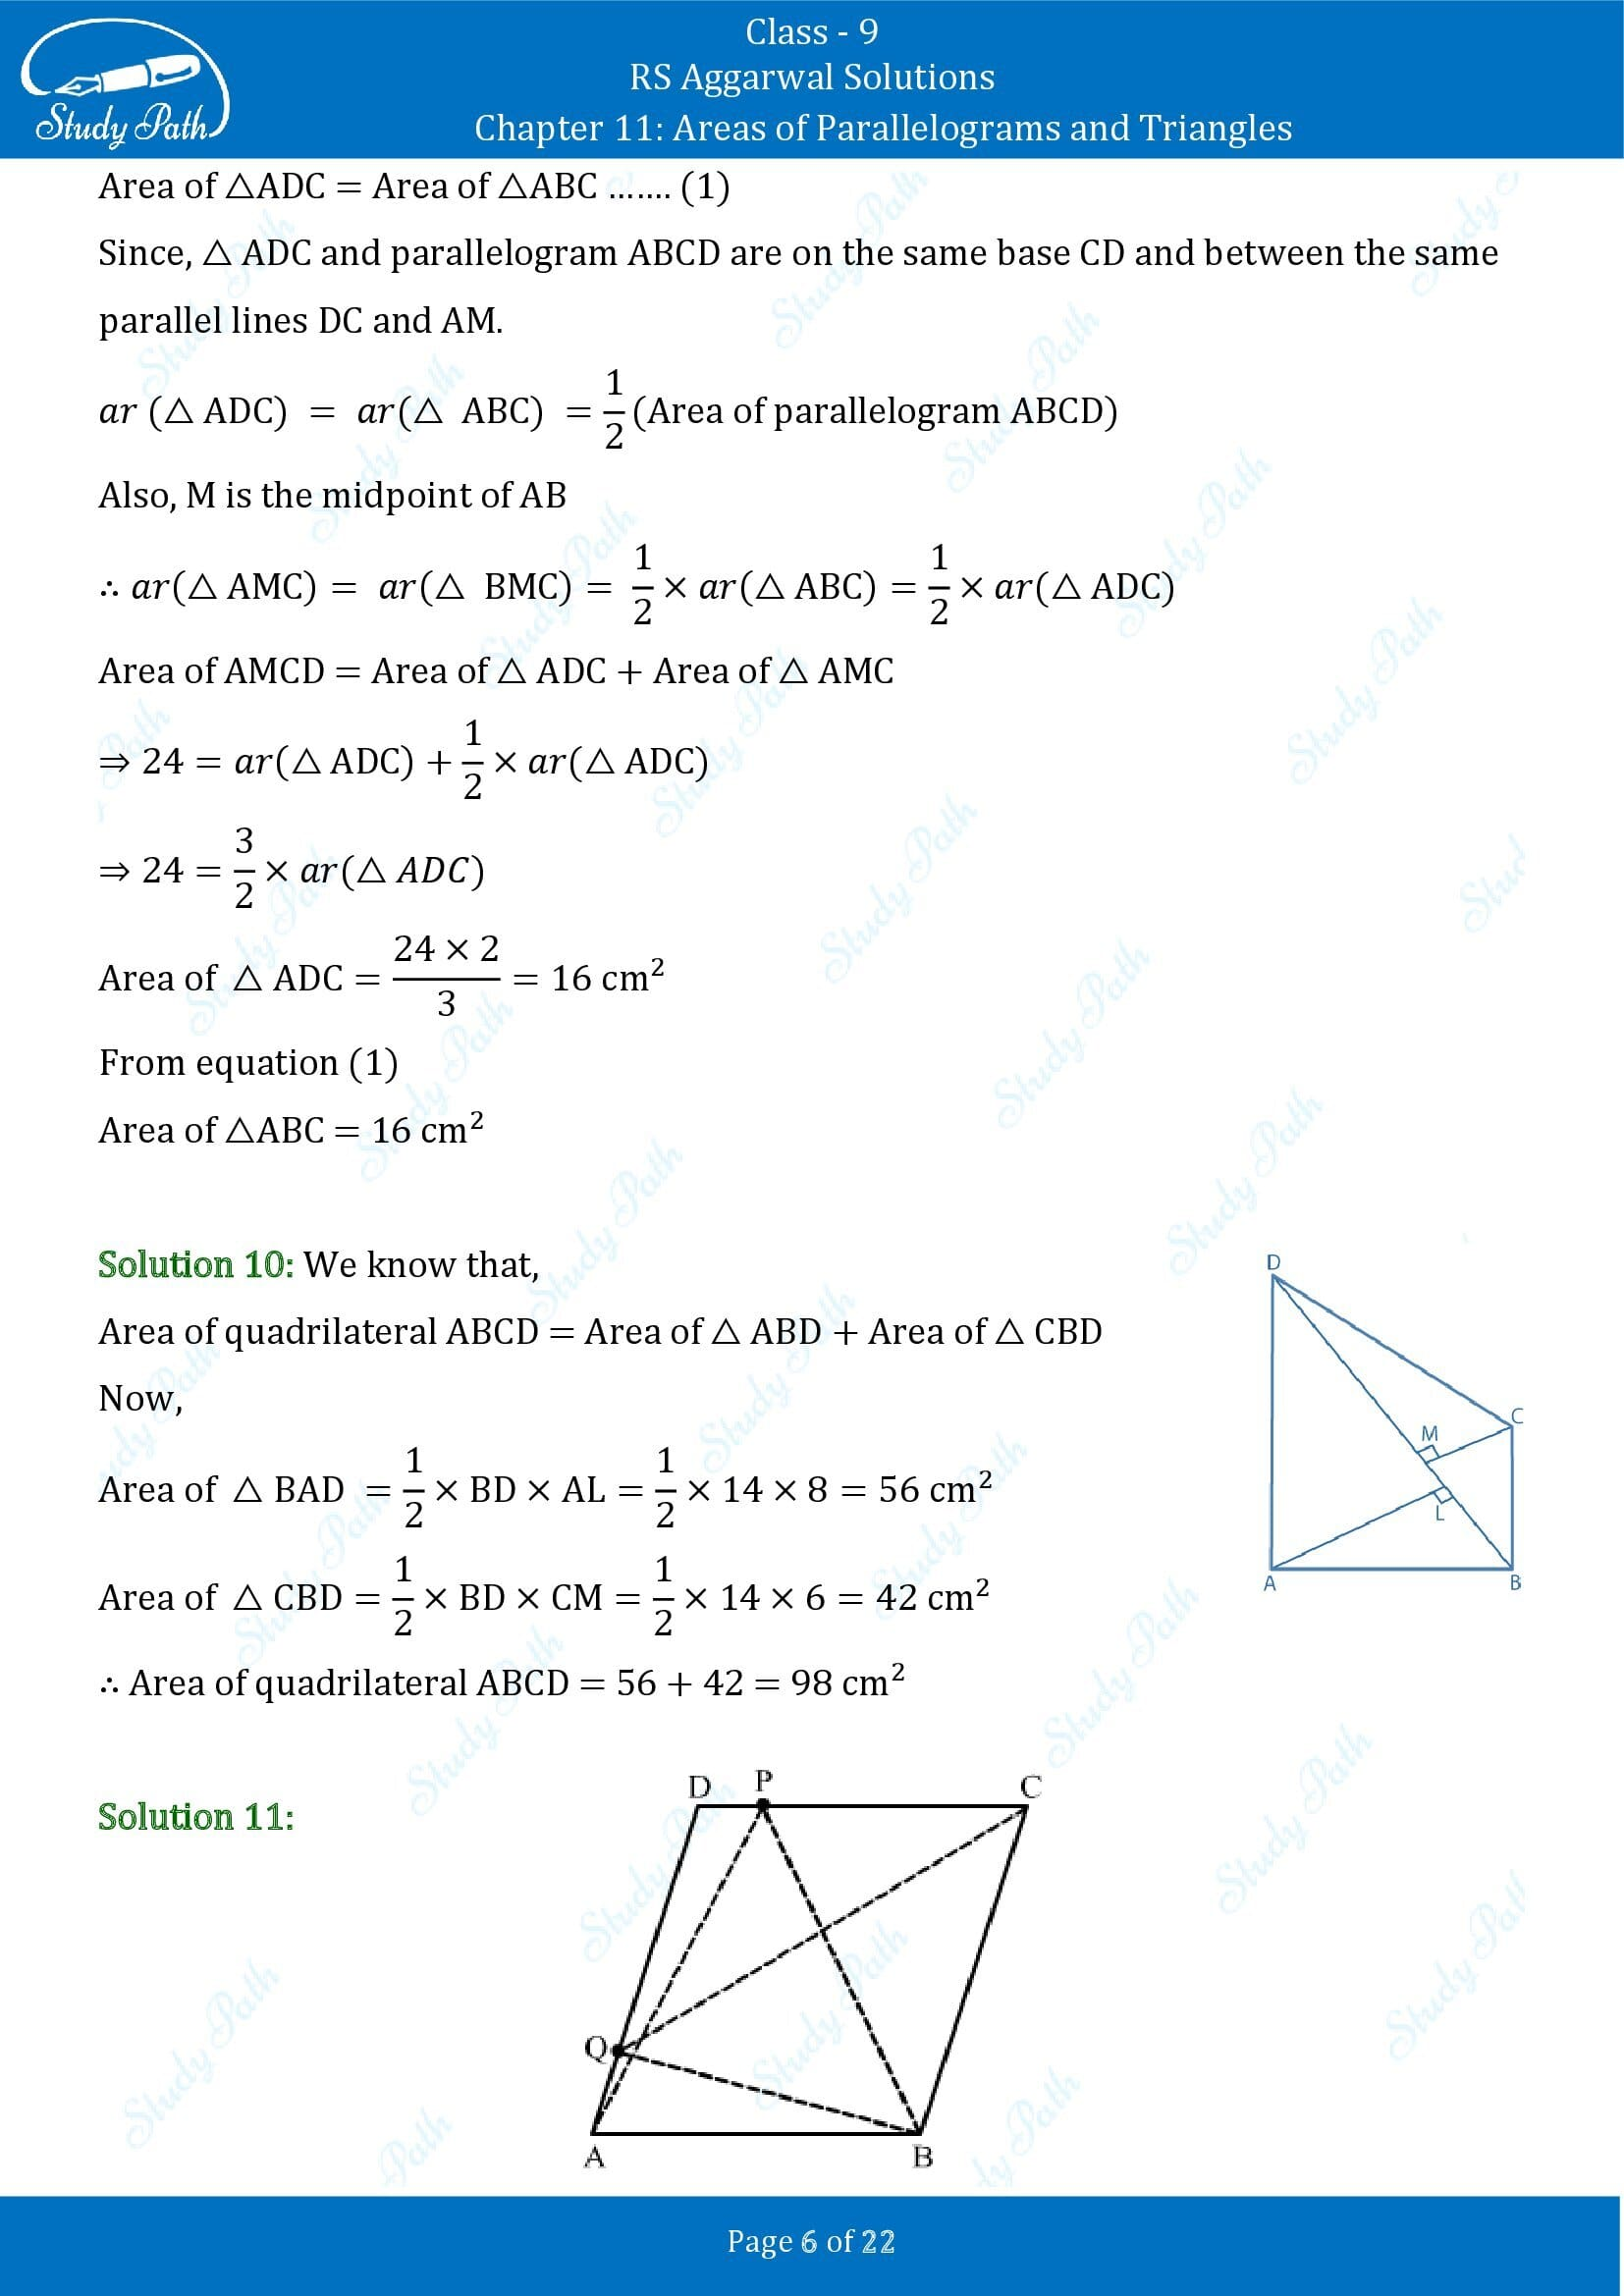 RS Aggarwal Solutions Class 9 Chapter 11 Areas of Parallelograms and Triangles Exercise 11 00006